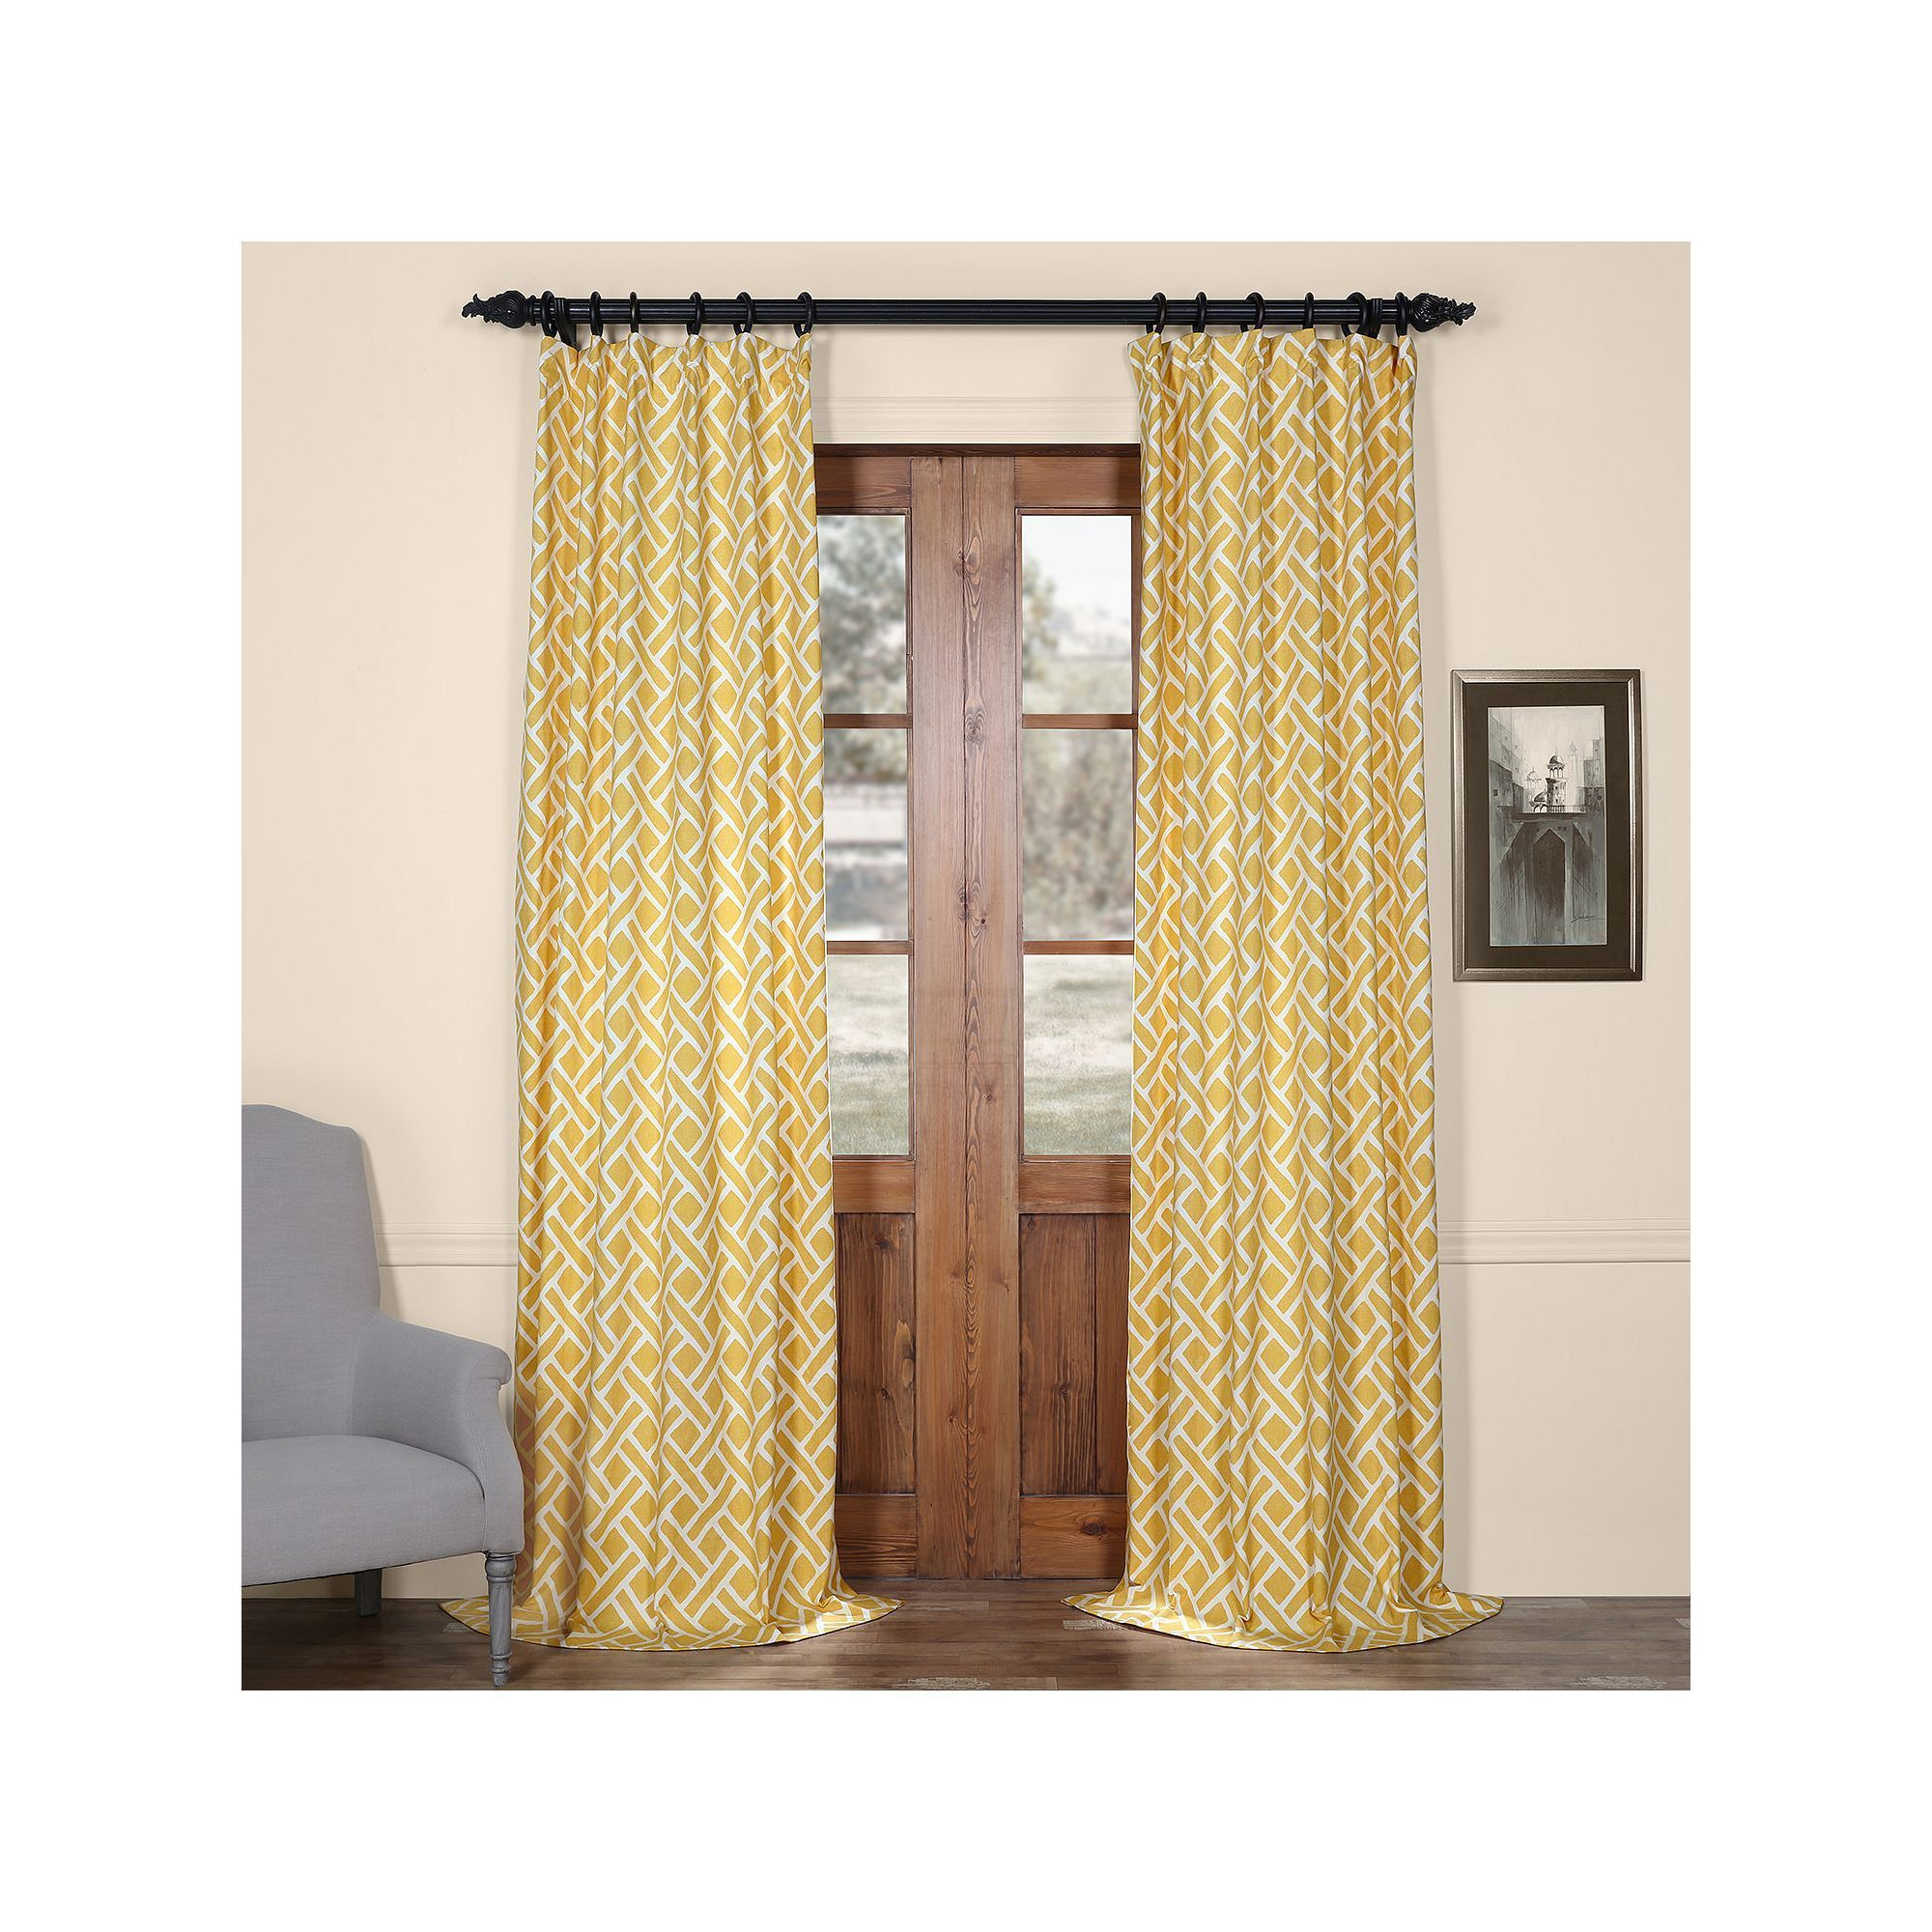 Eff martinique printed curtain yellow products curtains and